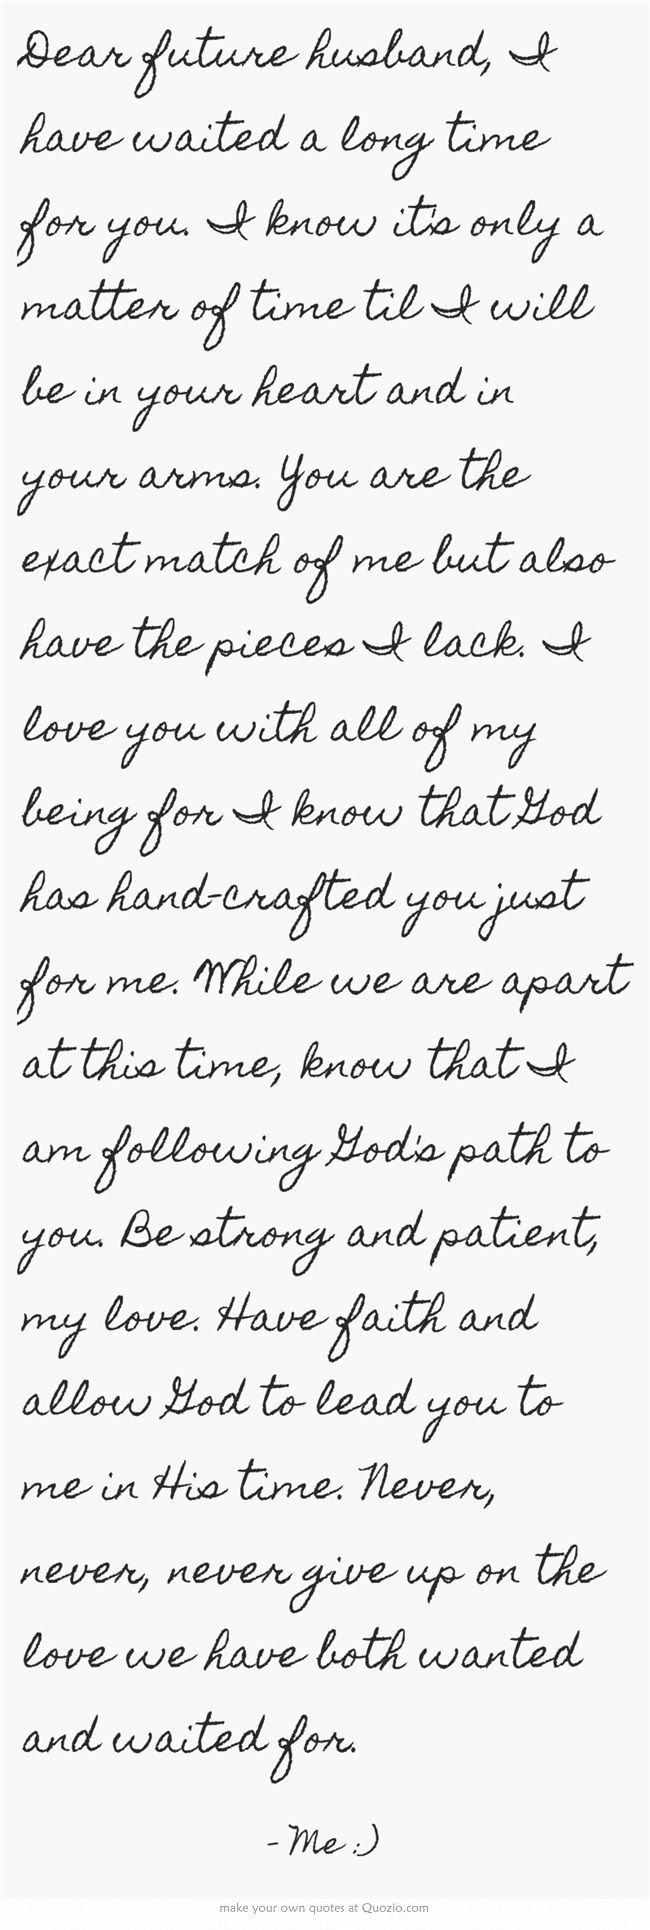 Long Love Quotes Love Quotes For Him  Dear Future Husband I Have Waited A Long